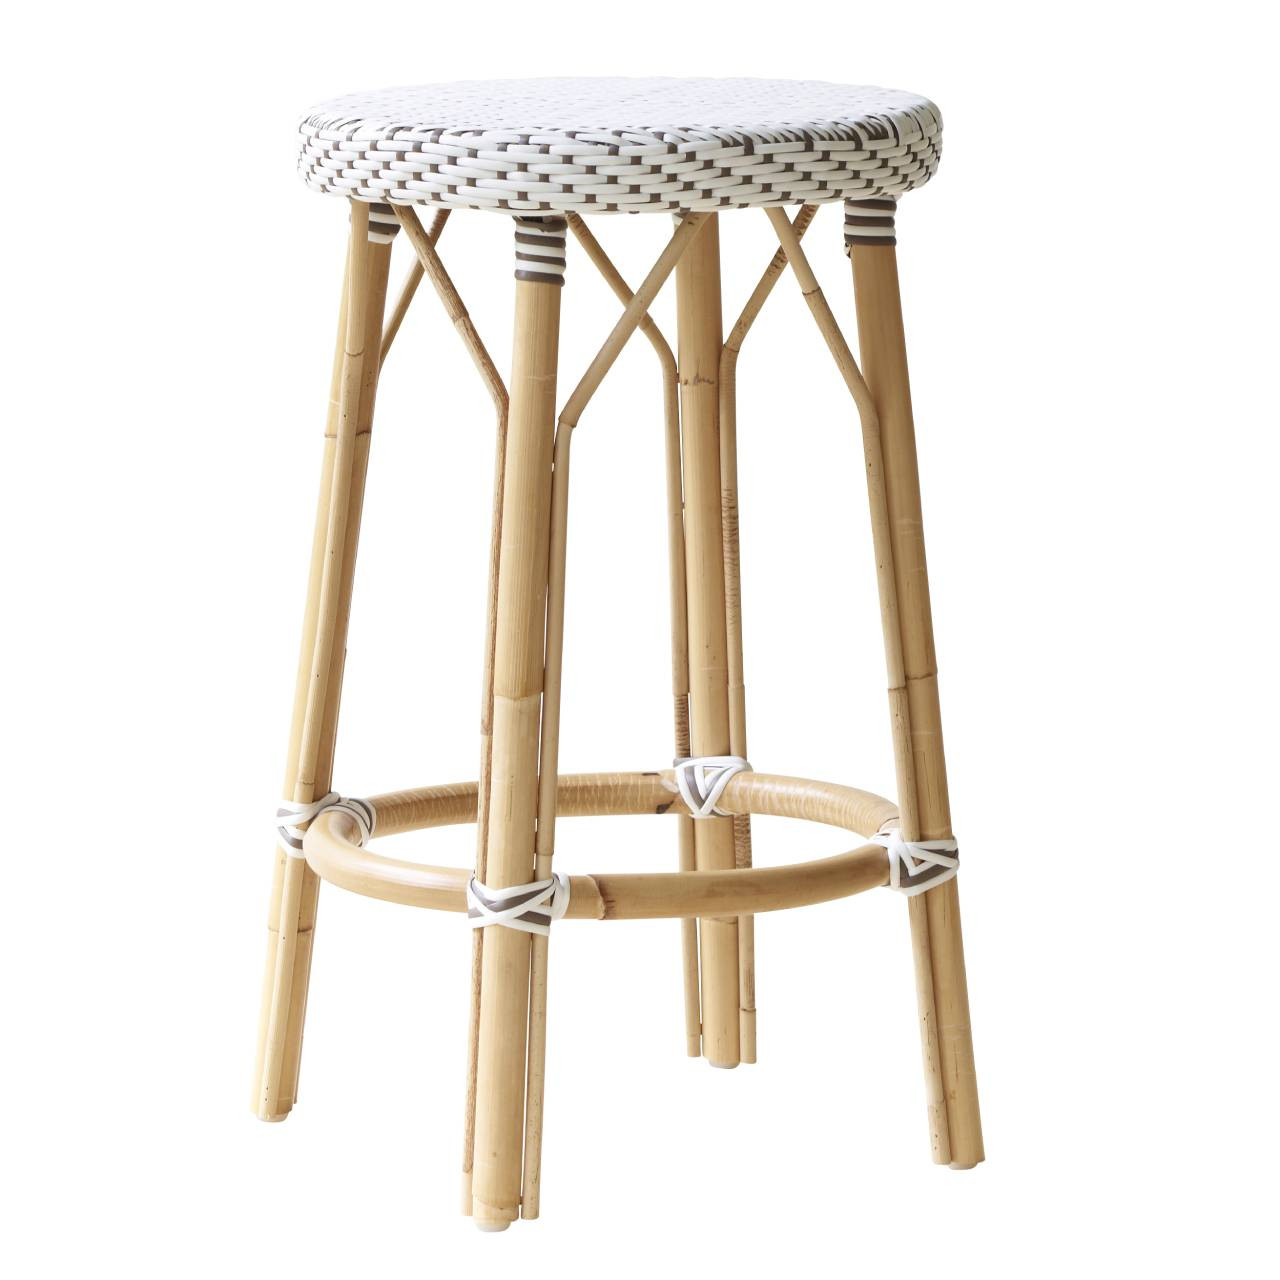 98746e0cf48 sika-design-9183cpwh-simone-counter-stool -white-with-cappuccino-dots  39882.1550611984.jpg c 2 imbypass on